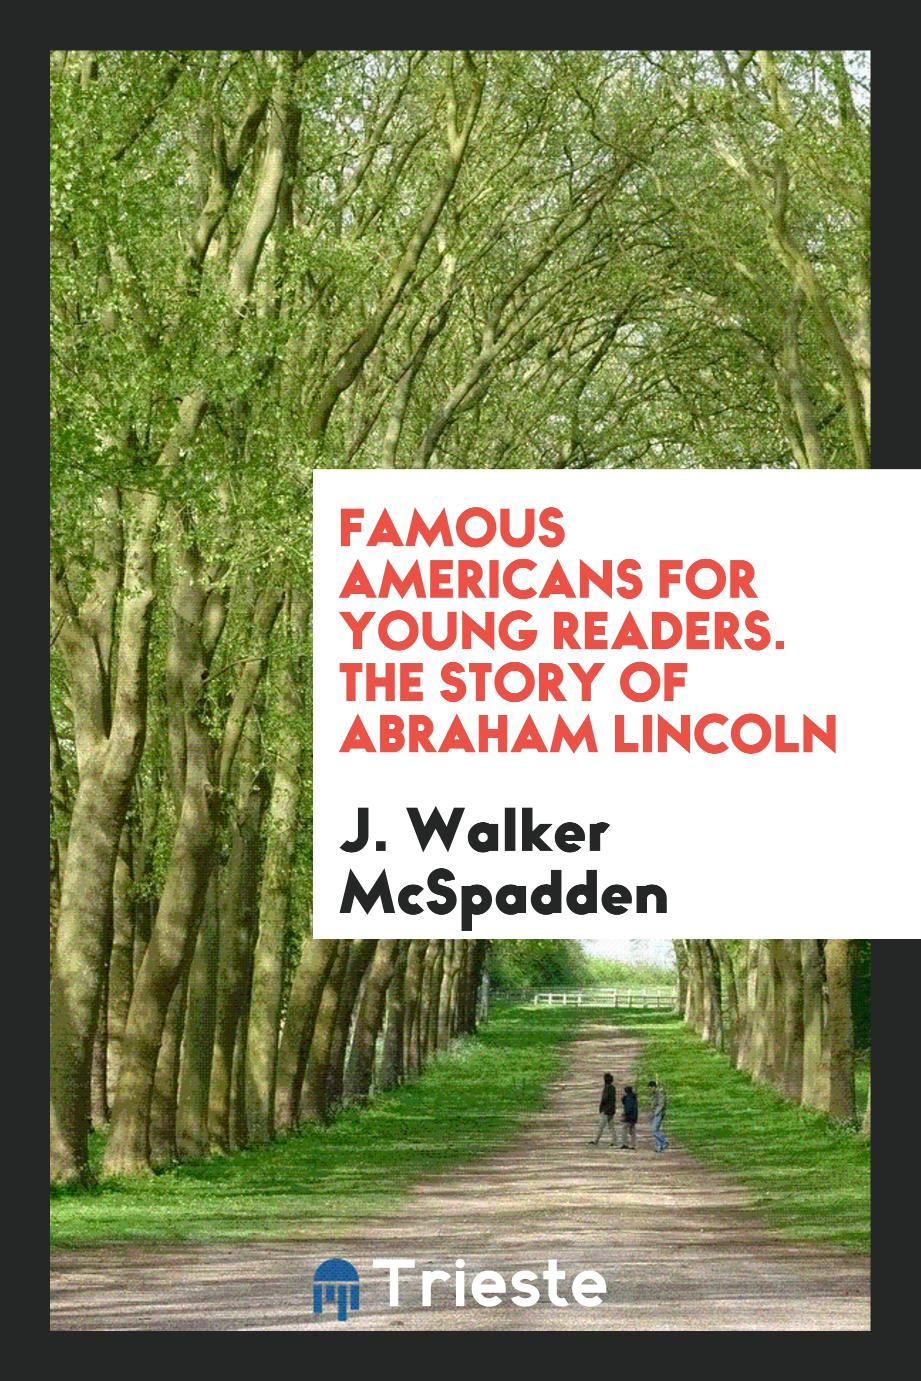 Famous Americans for young readers. The story of Abraham Lincoln